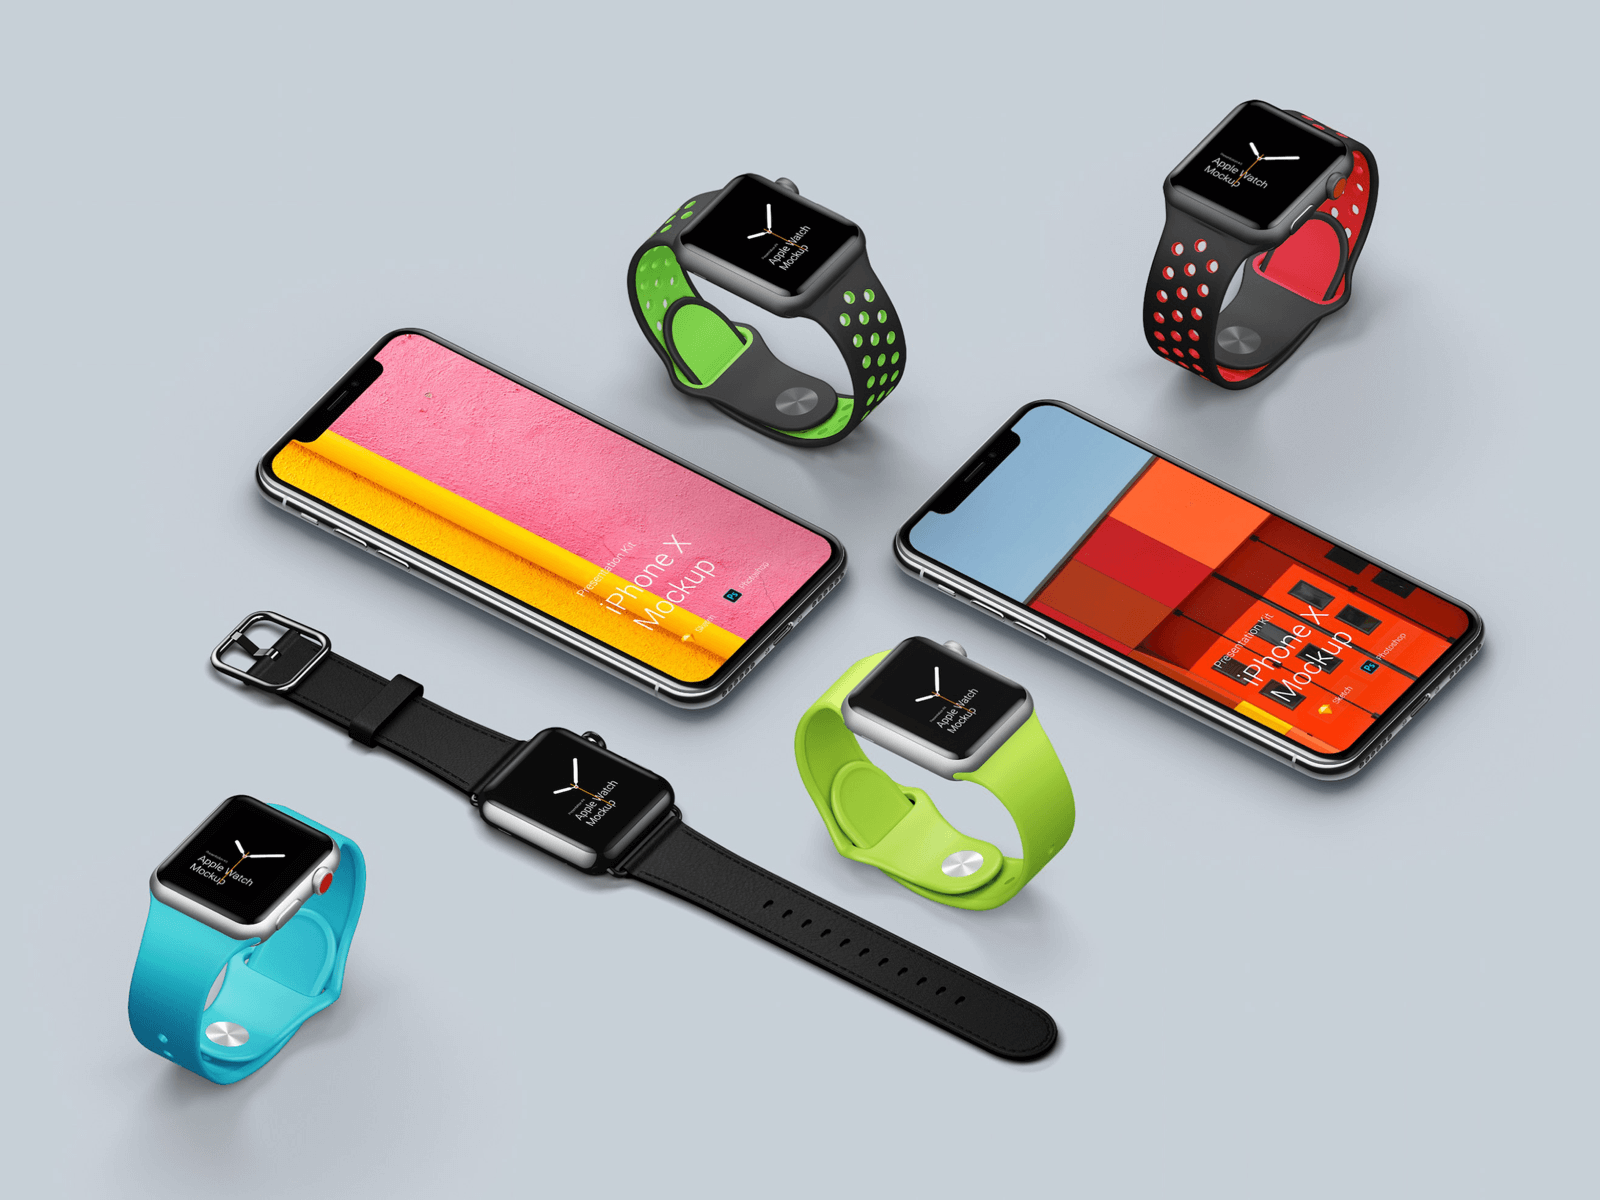 Preview of some device mockups from the Presentation Kit